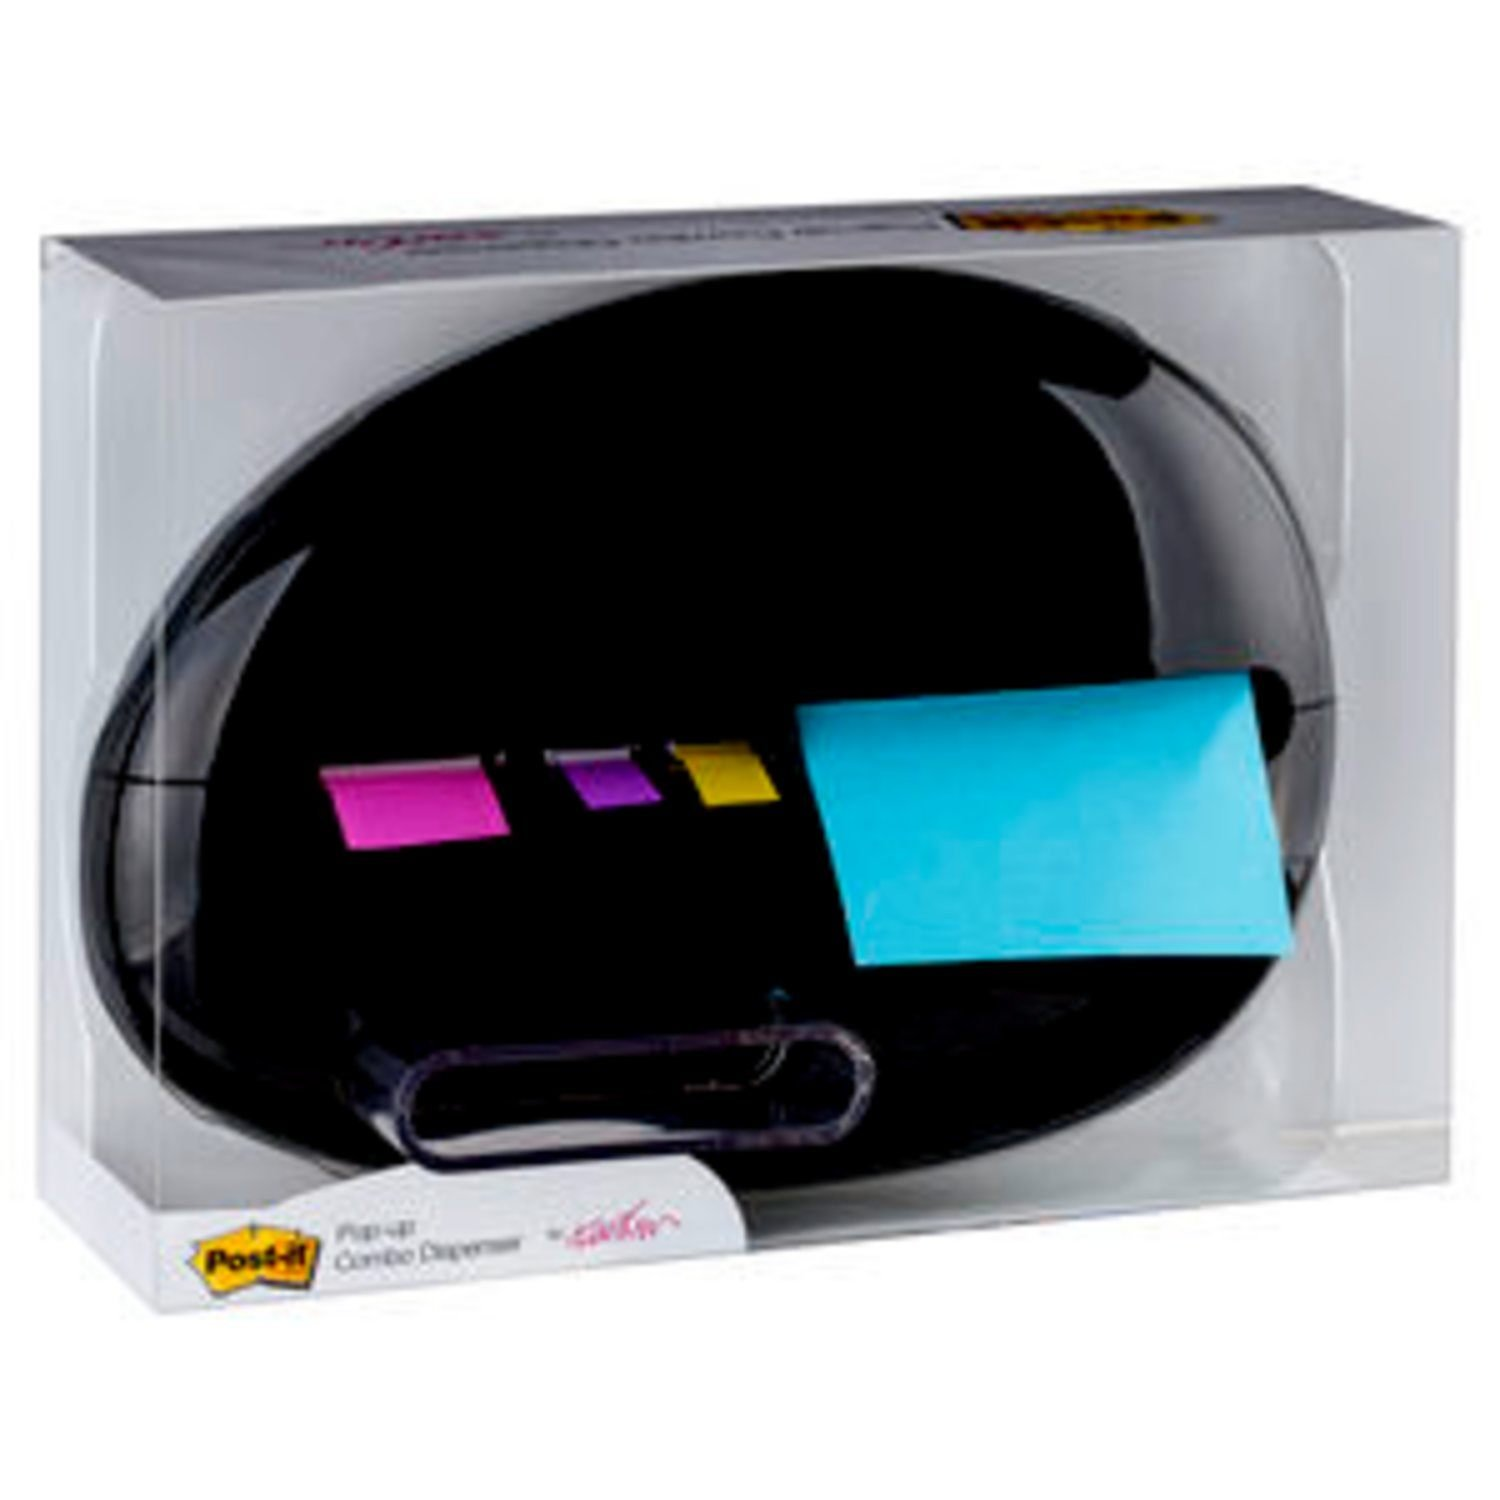 Post-it Pop-up Notes Dispenser for 3 in x 3 in Notes and Assorted Flags, Pebble Collection by Karim (PBL100)